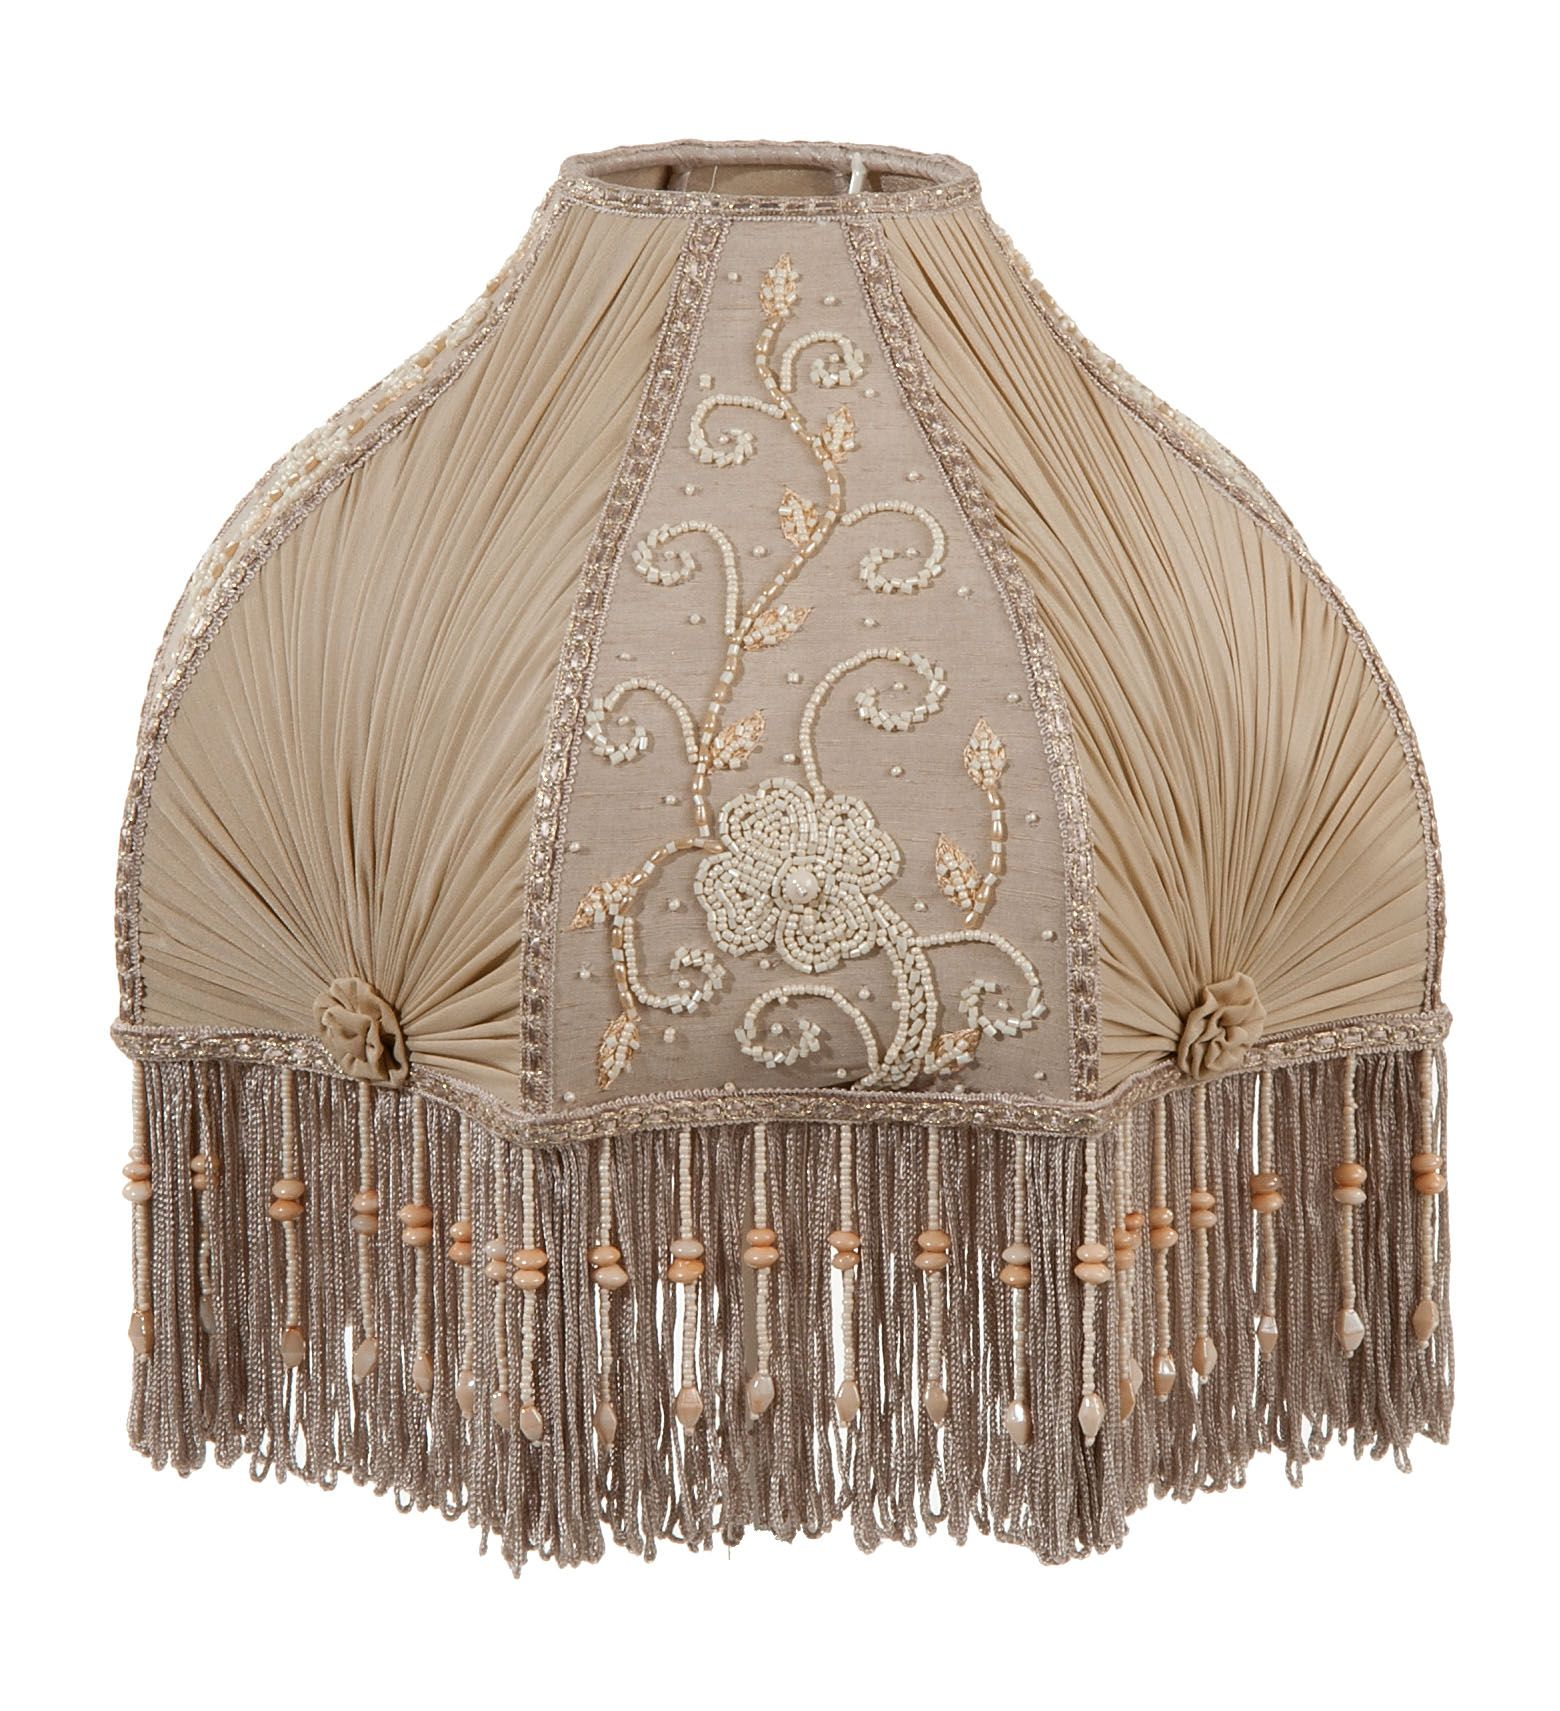 Charming Ideas Better Homes And Gardens Lamp Shades. Victorian Antique Buff Pleated Chiffon and Embroidered Panels Lamp Shade  Supply